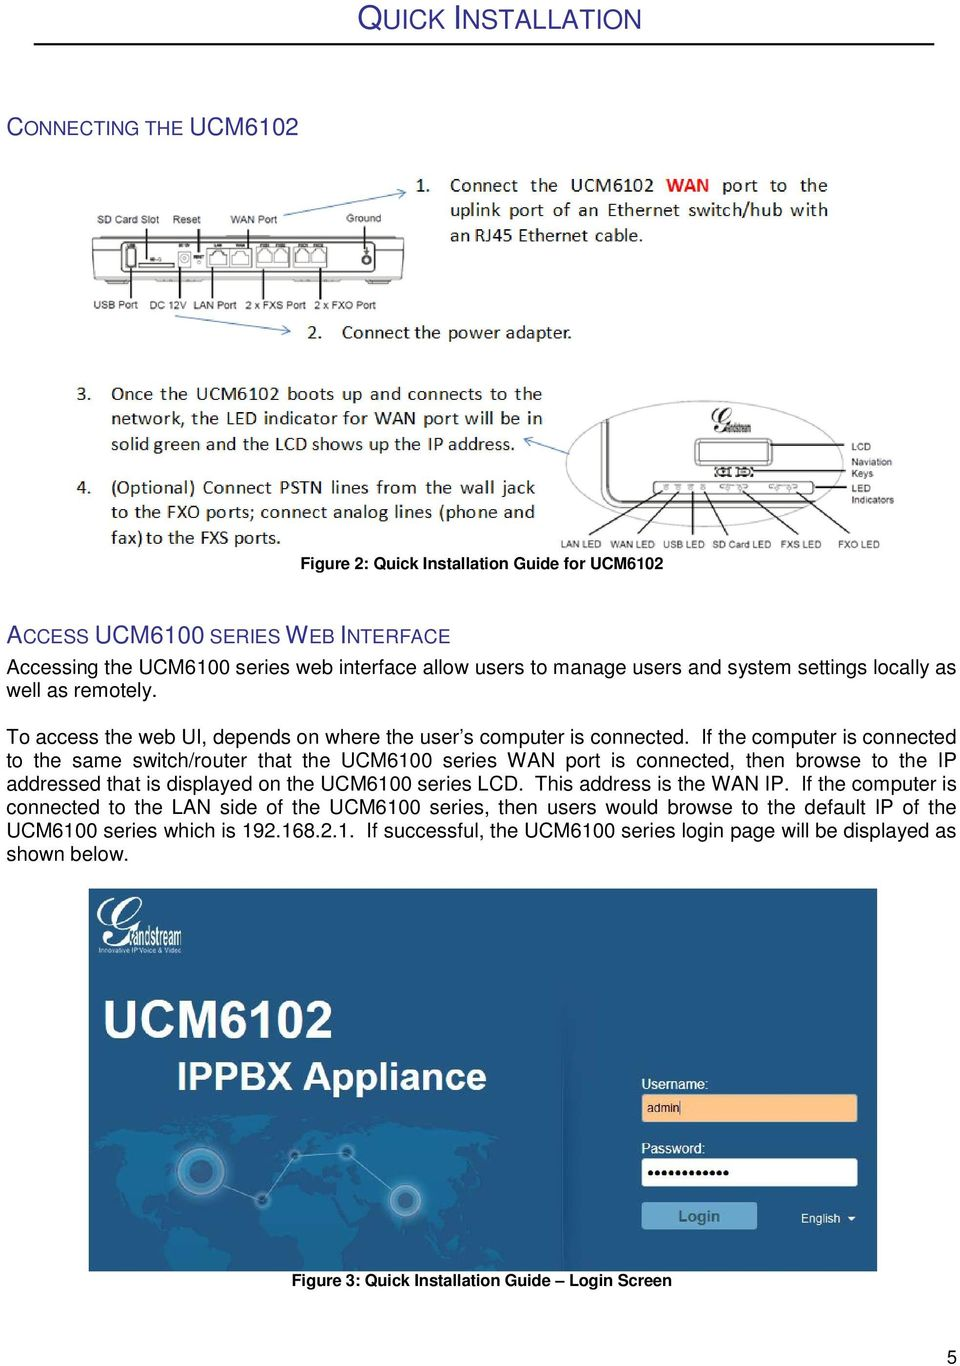 If the computer is connected to the same switch/router that the UCM6100 series WAN port is connected, then browse to the IP addressed that is displayed on the UCM6100 series LCD.